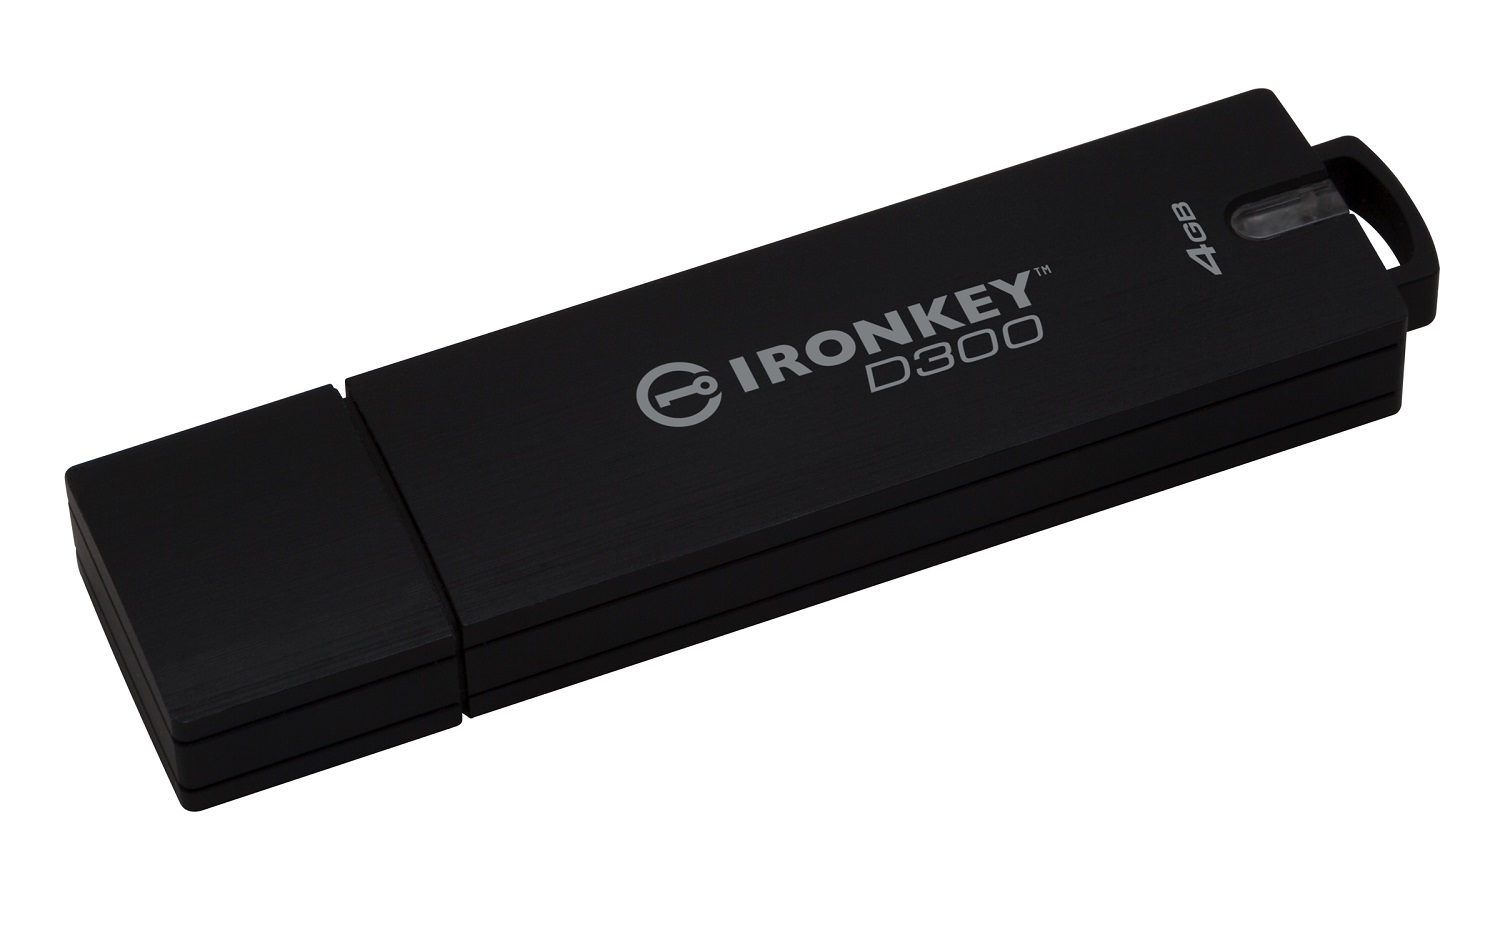 4GB Kingston IronKey D300 šifrovaný USB 3.0 FIPS Level 3